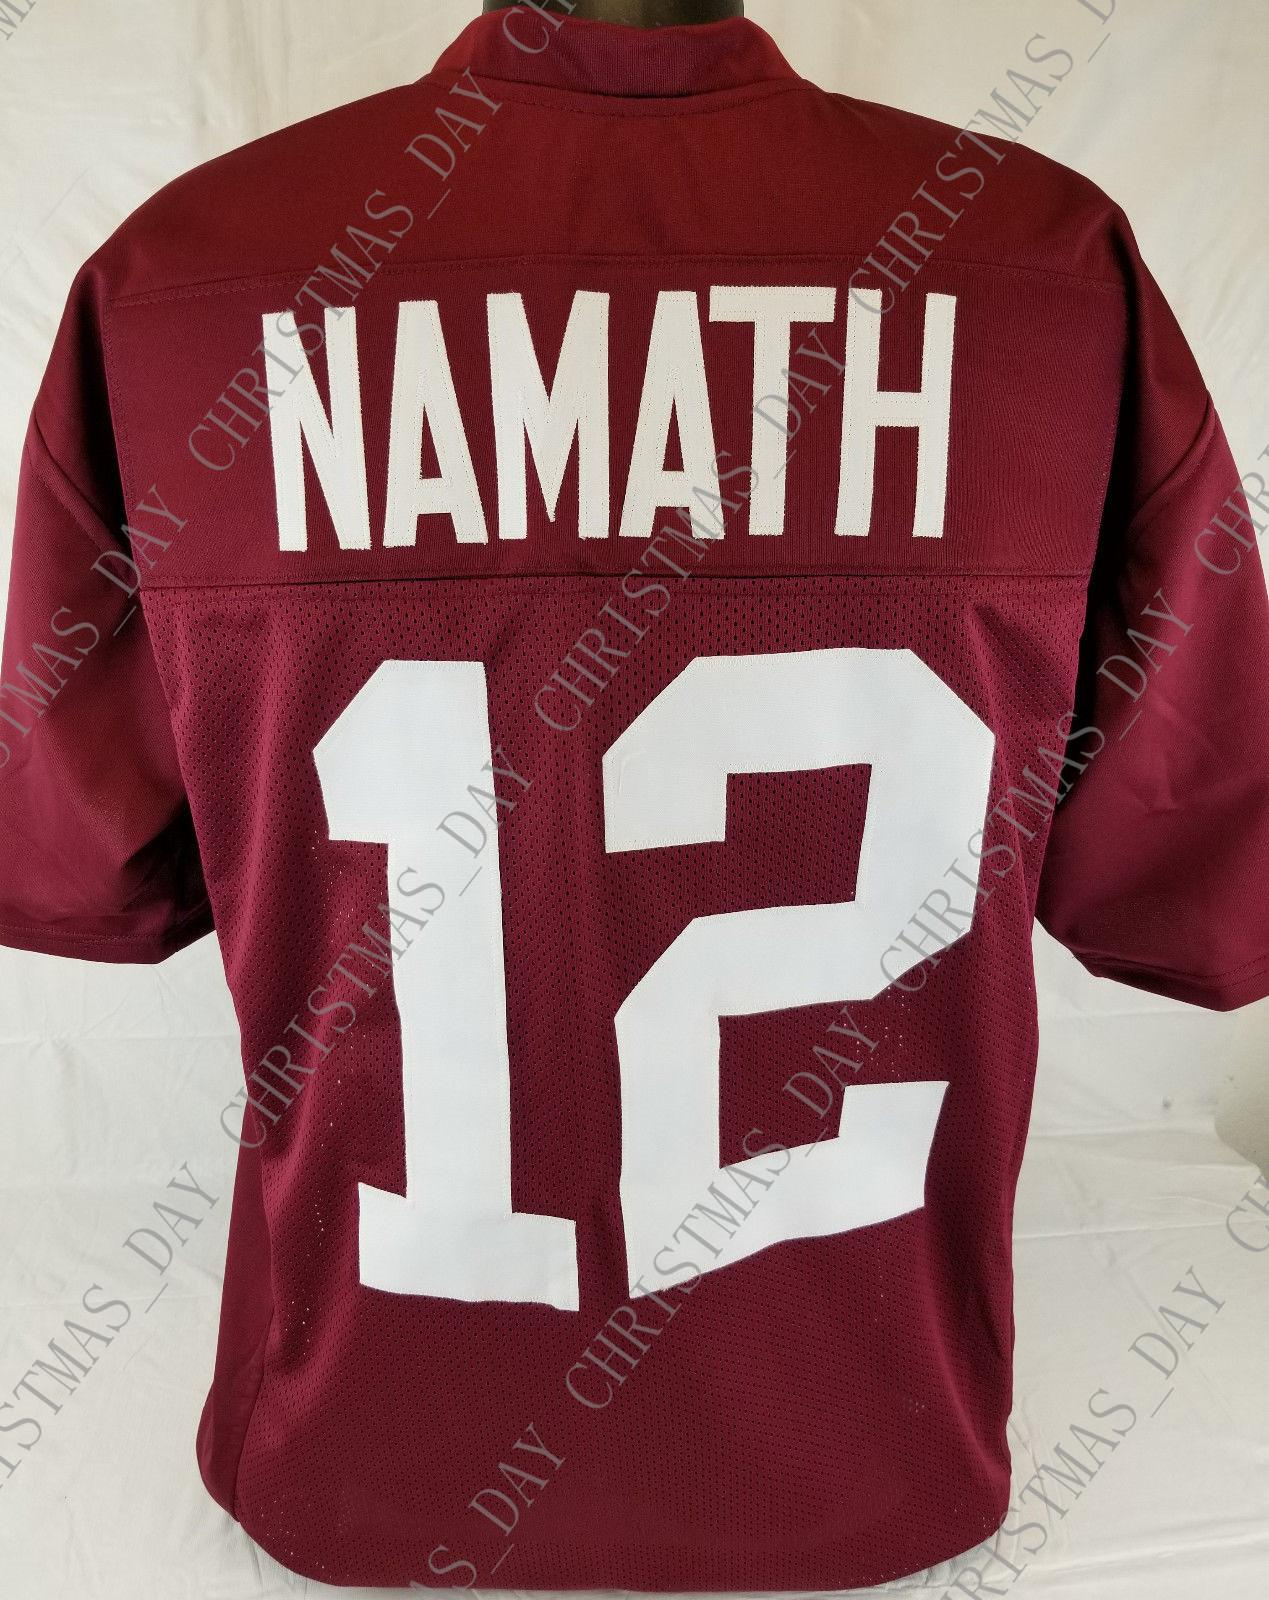 quality design cba41 6c3e2 Cheap custom Joe Namath Crimson College Style Football Jersey Size 3XL  Customized Any name number Stitched Jersey XS-5XL